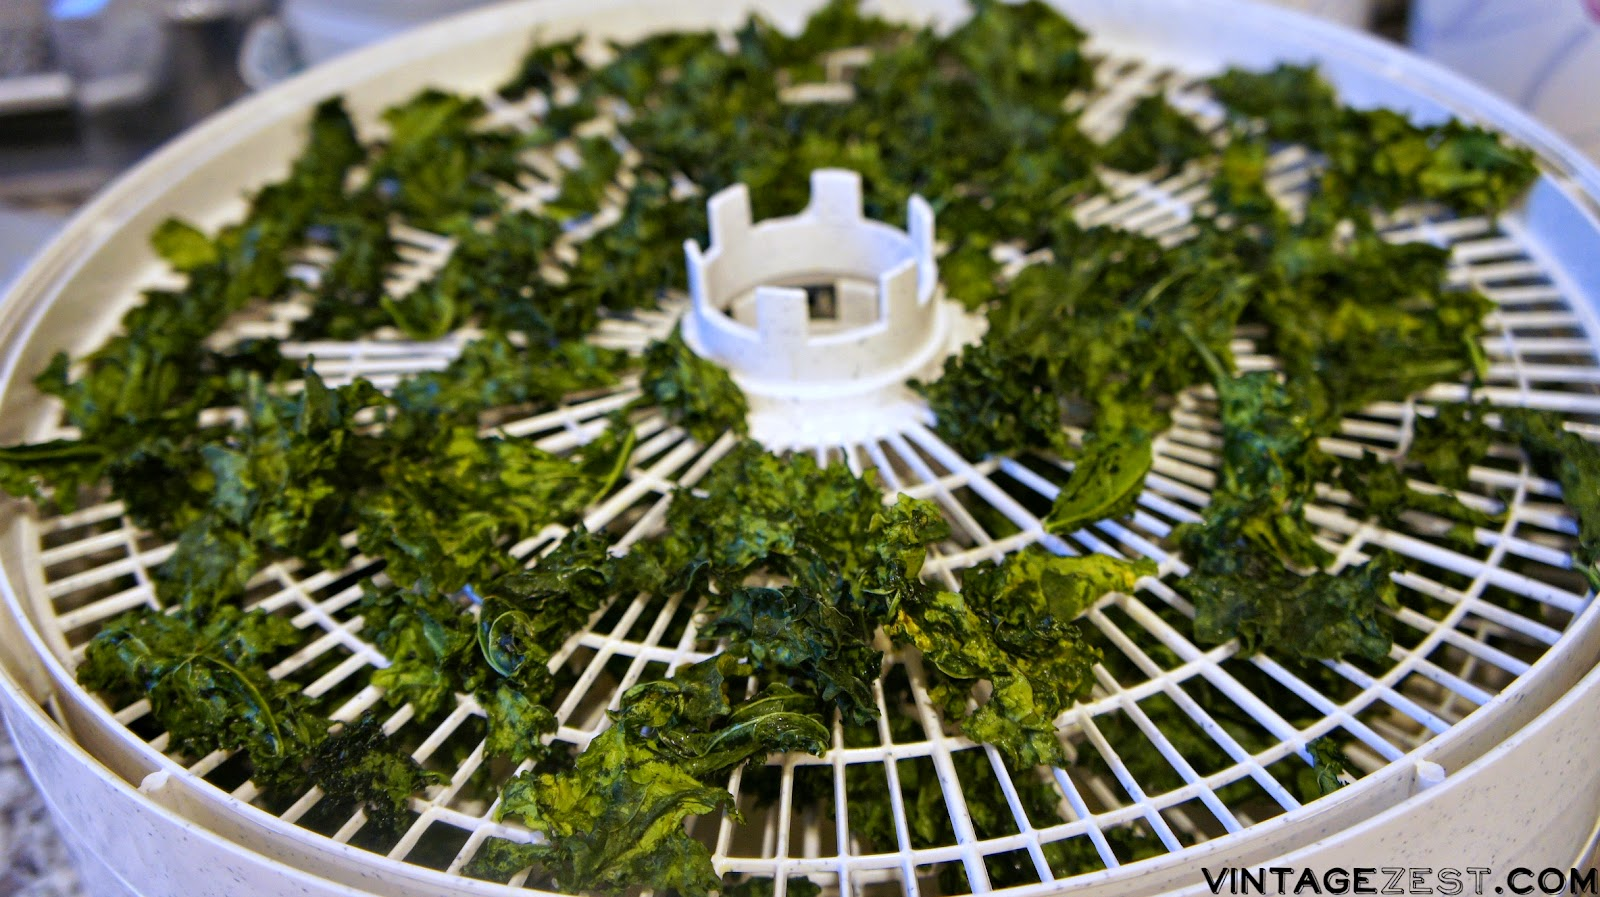 Homemade Kale Chips on Diane's Vintage Zest! #recipe #easy #healthy #vegetarian